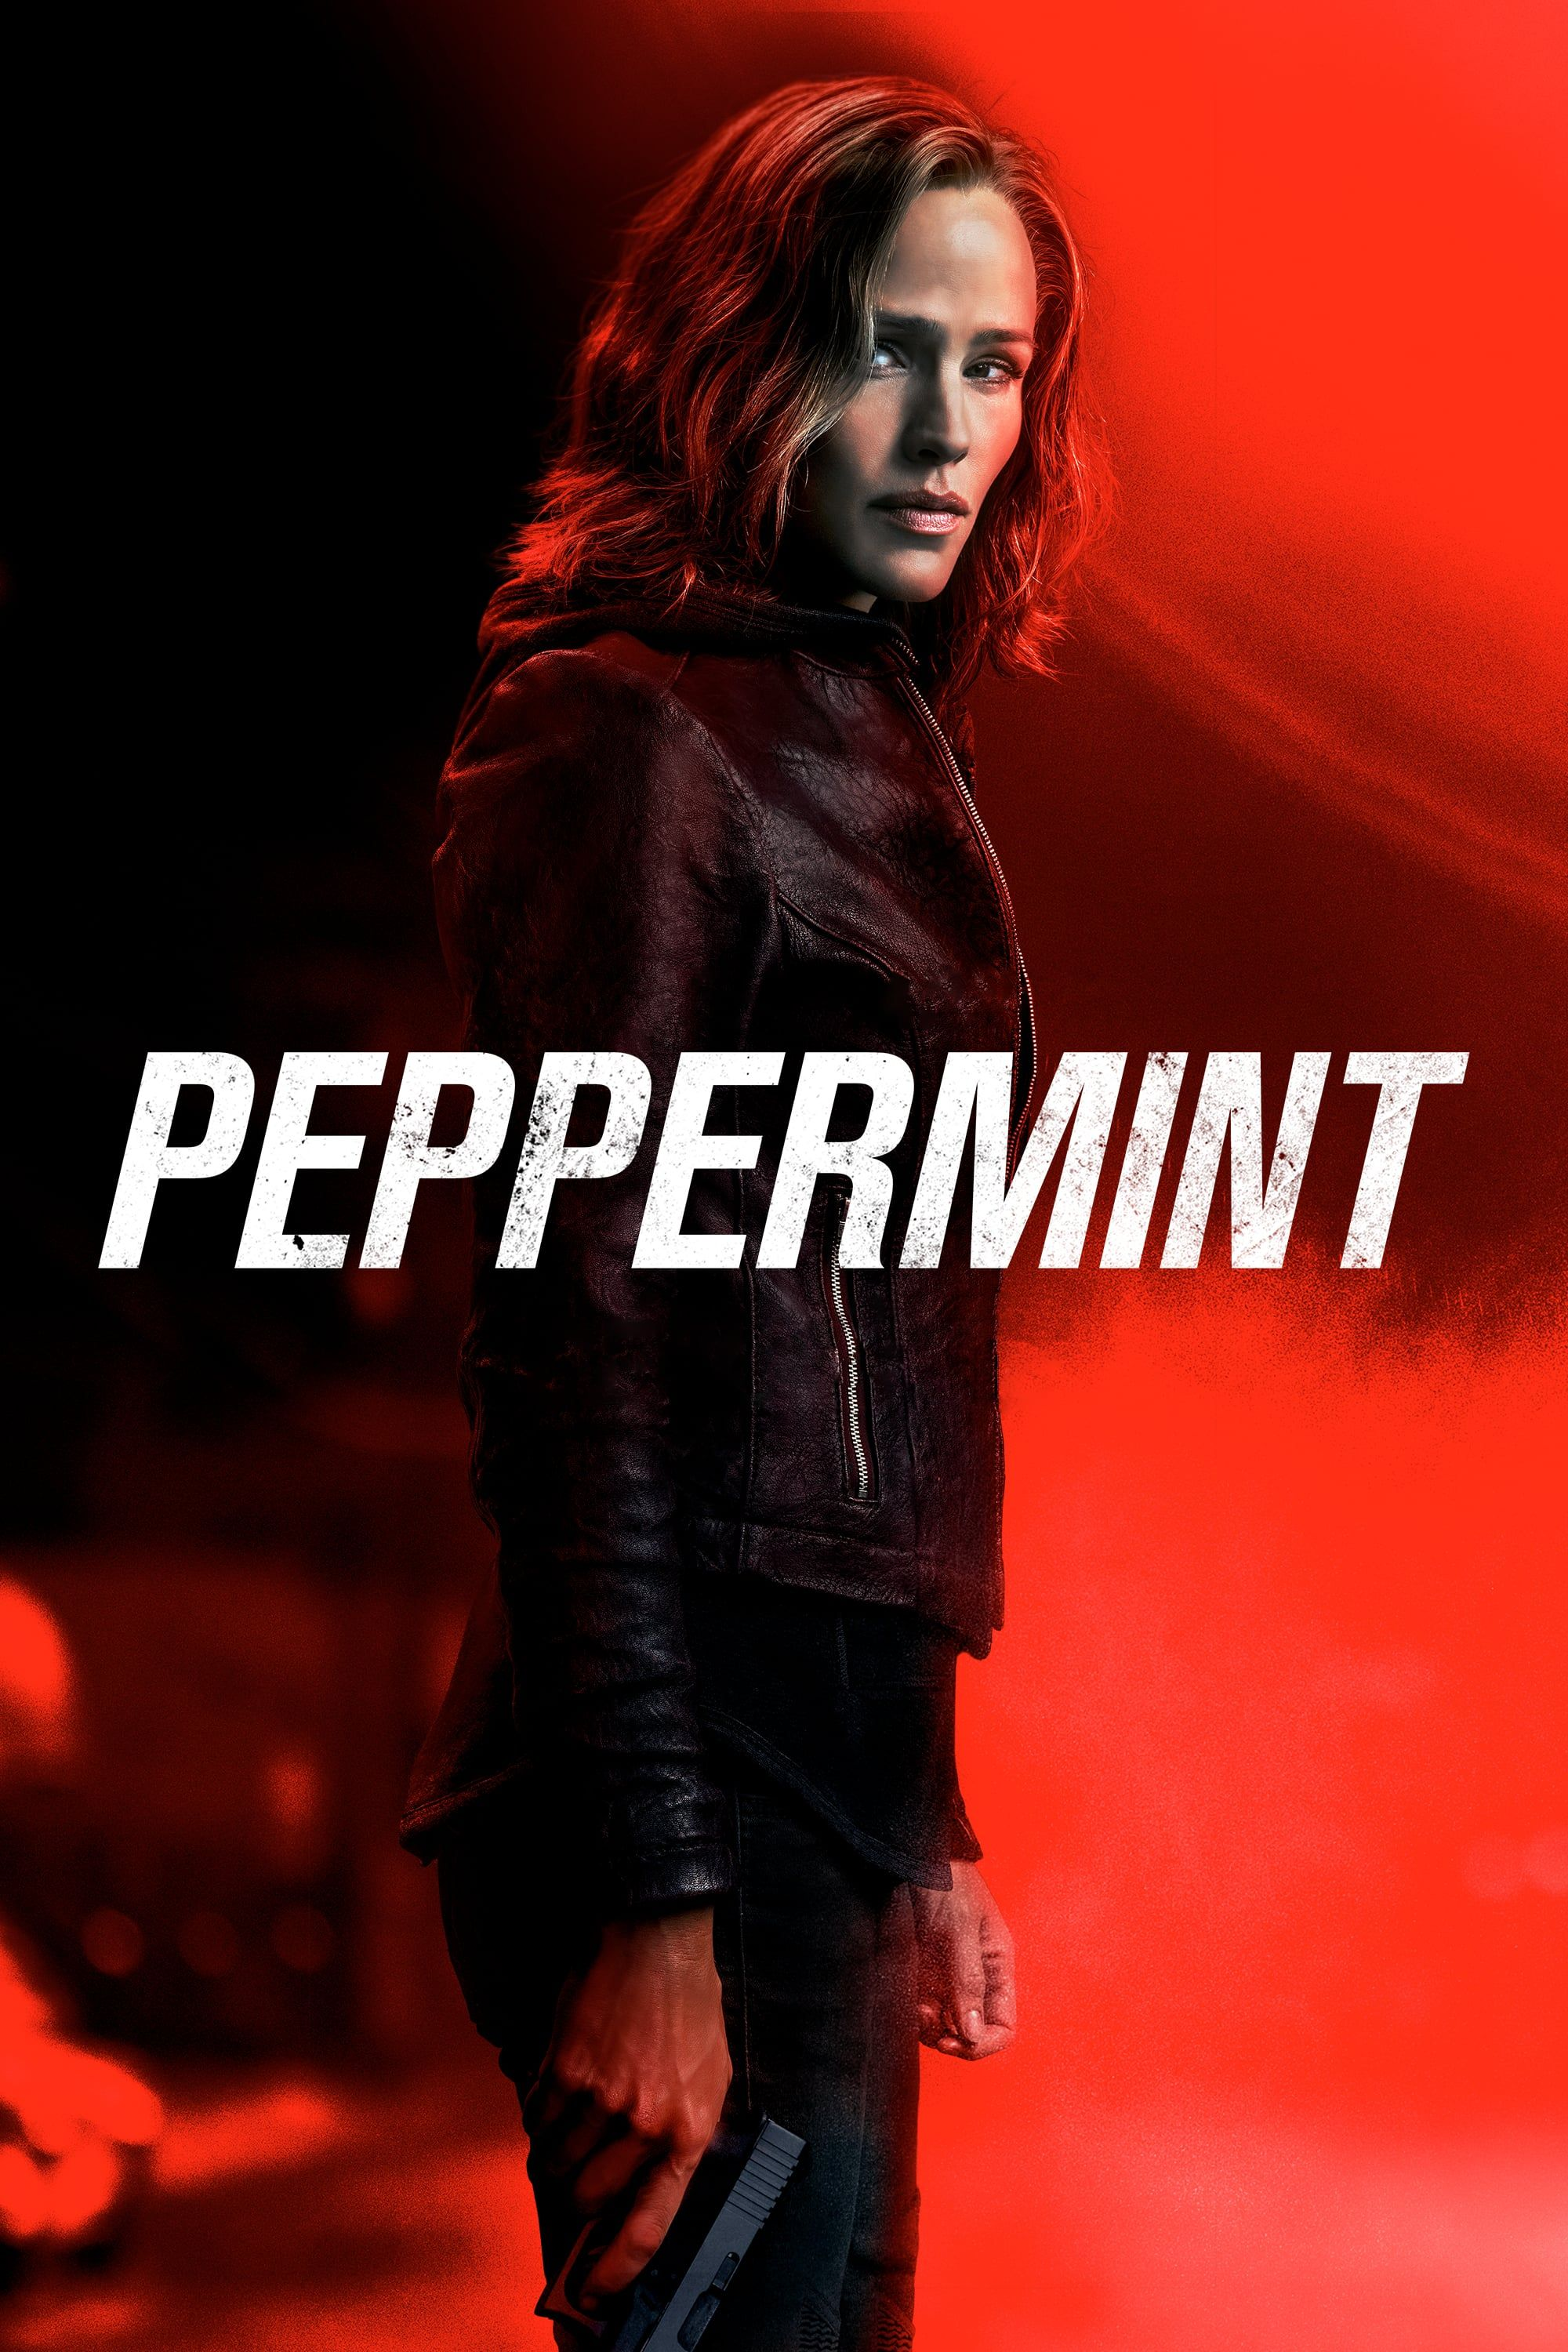 Image result for Peppermint (2018) pinterest